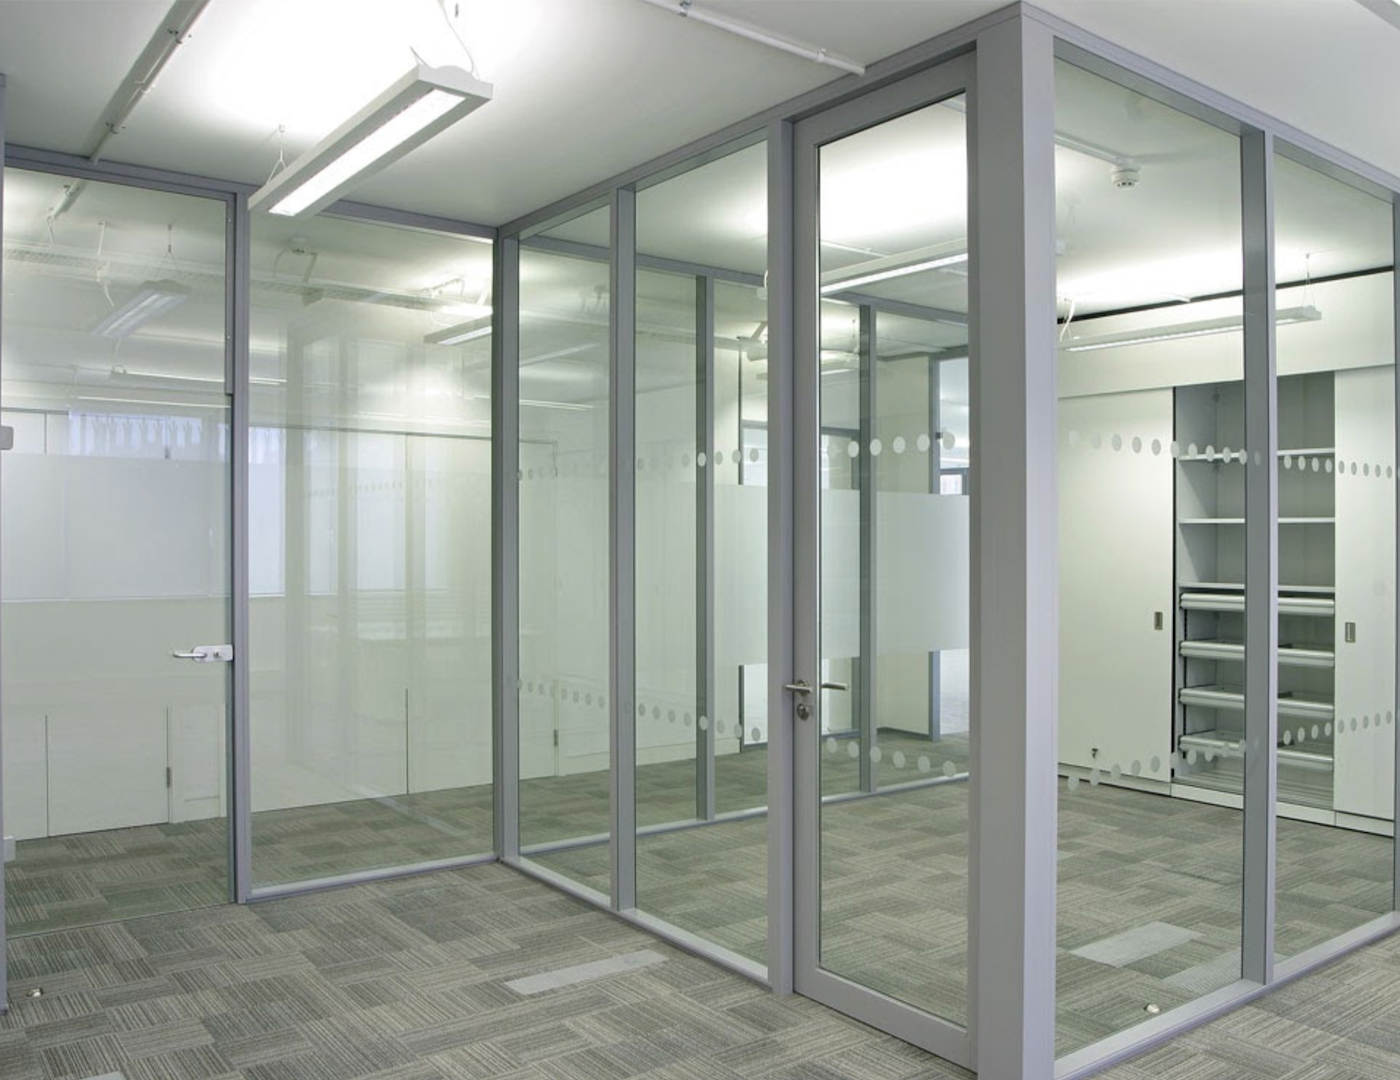 The hinged glass frame swing door can be free swing or self-closing